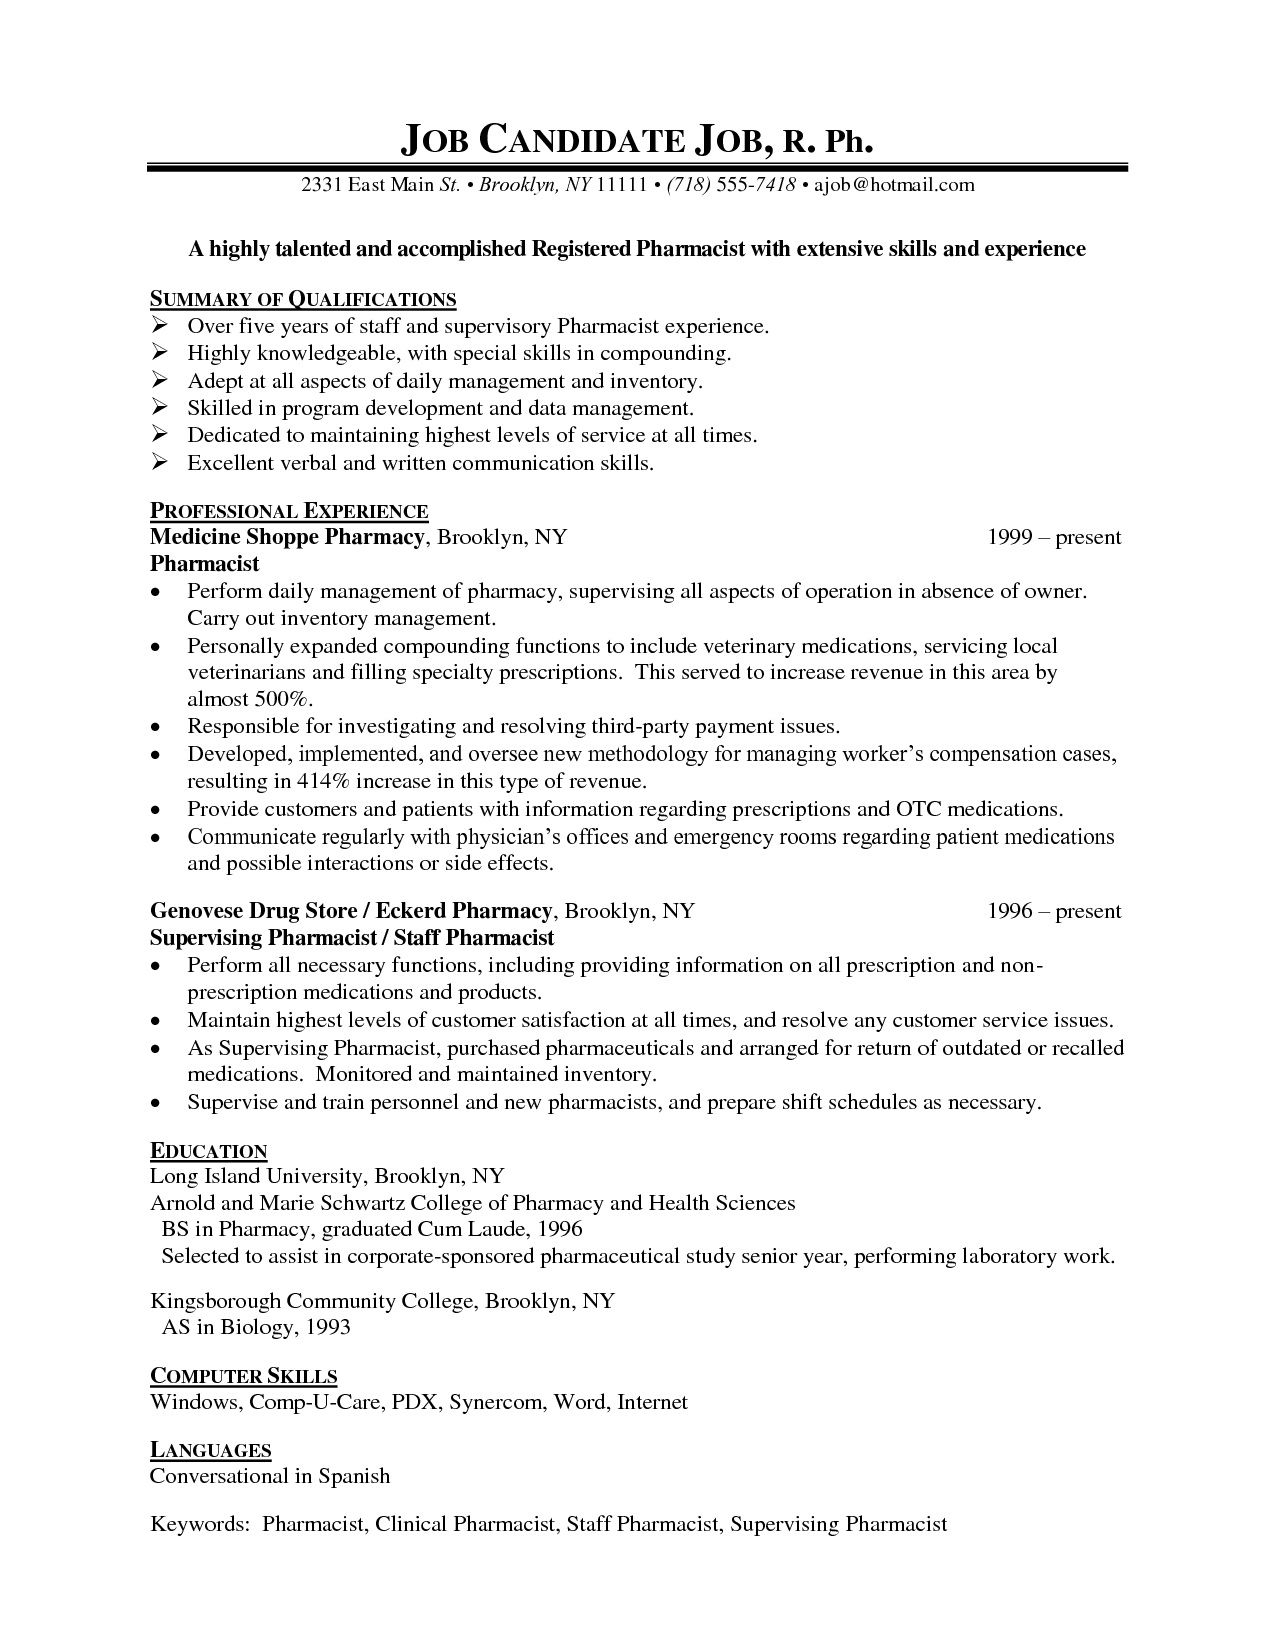 Captivating Ambulatory Care Pharmacist Sample Resume 16 Cashier Cover Letter Sample Job  And Resume Template.  Pharmacist Sample Resume